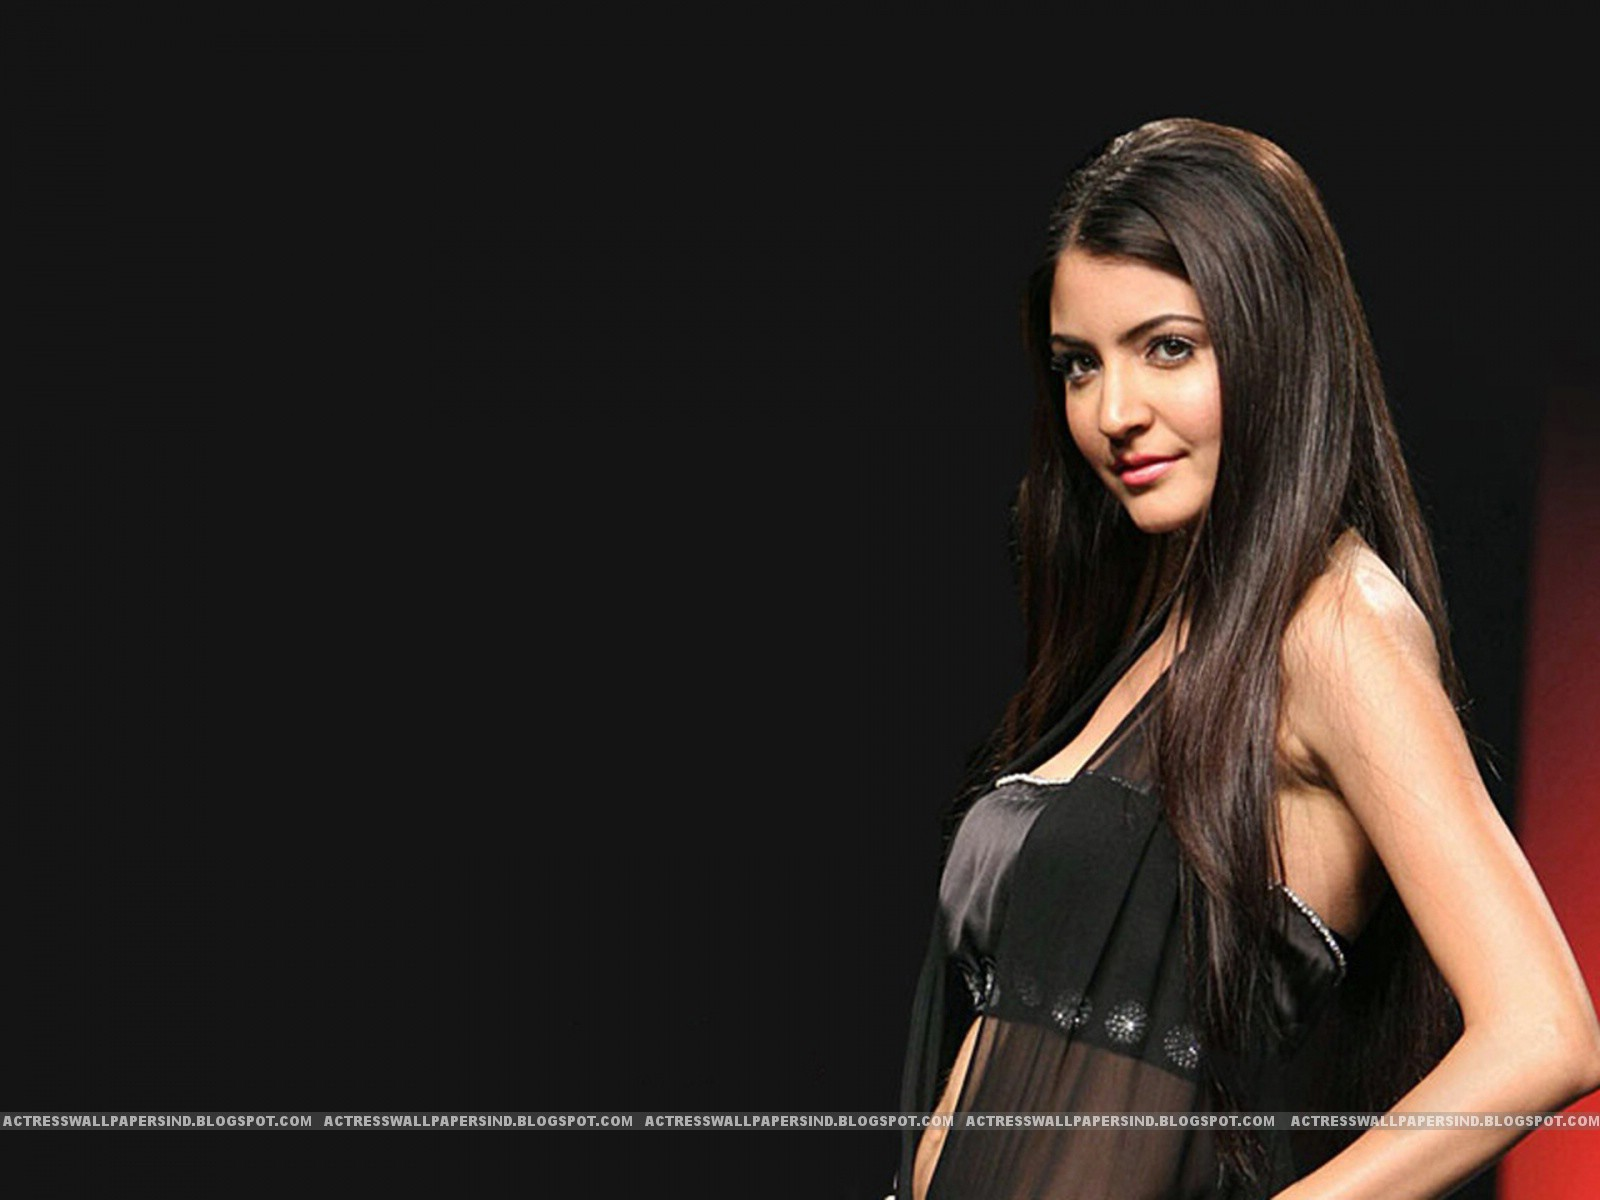 Anushka Sharma Sexy Photos Hd - A Wind-5811